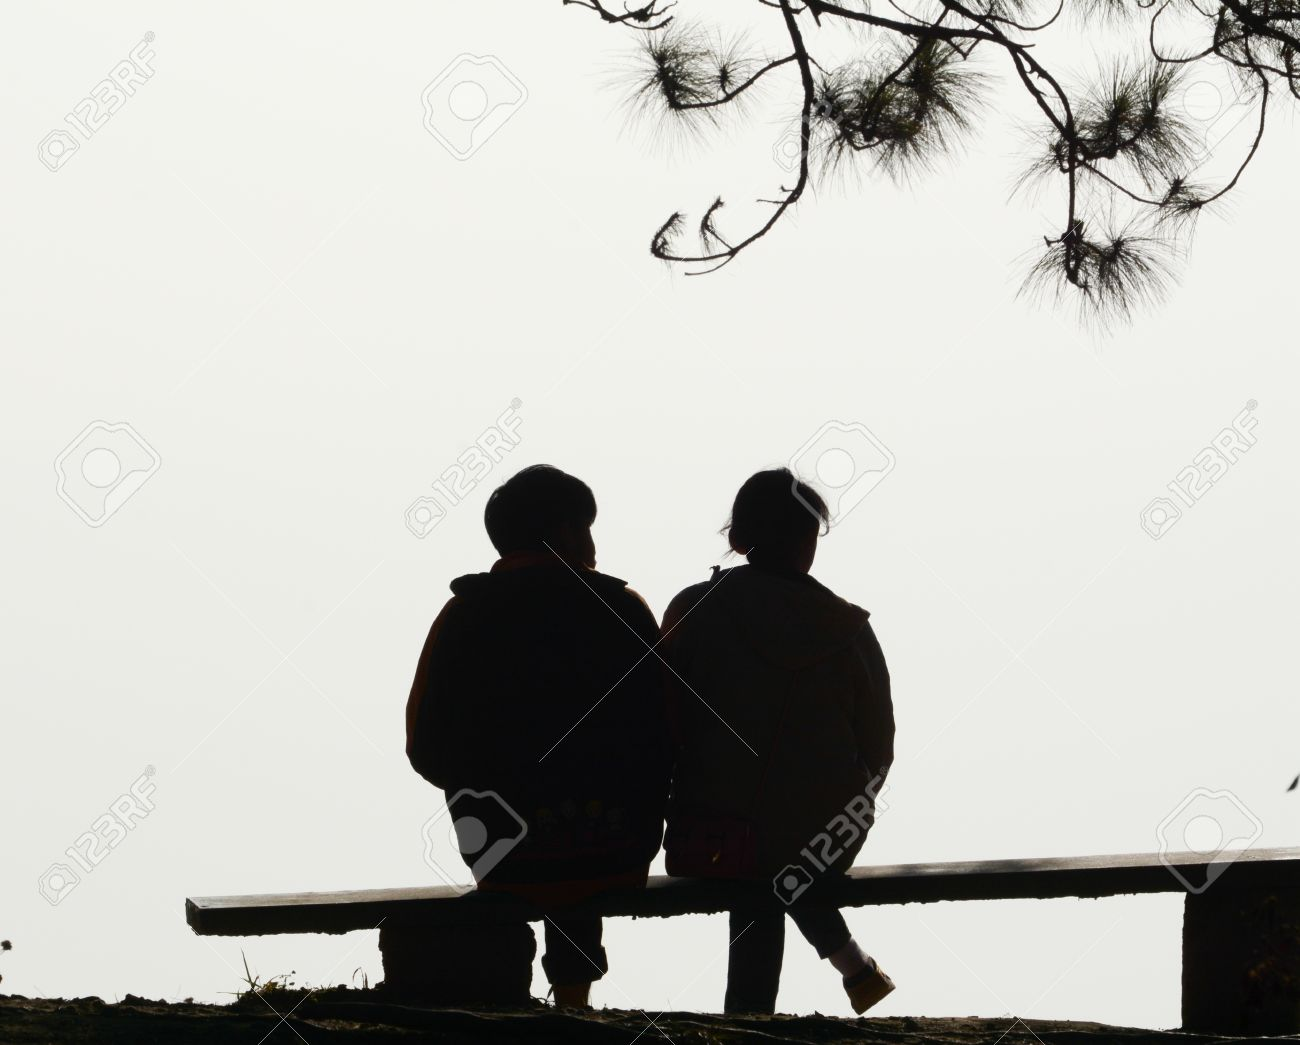 Silhouette Couple Love Sitting On Bench Stock Photo, Picture And ... for People On Bench Silhouette  lp0lpmzq